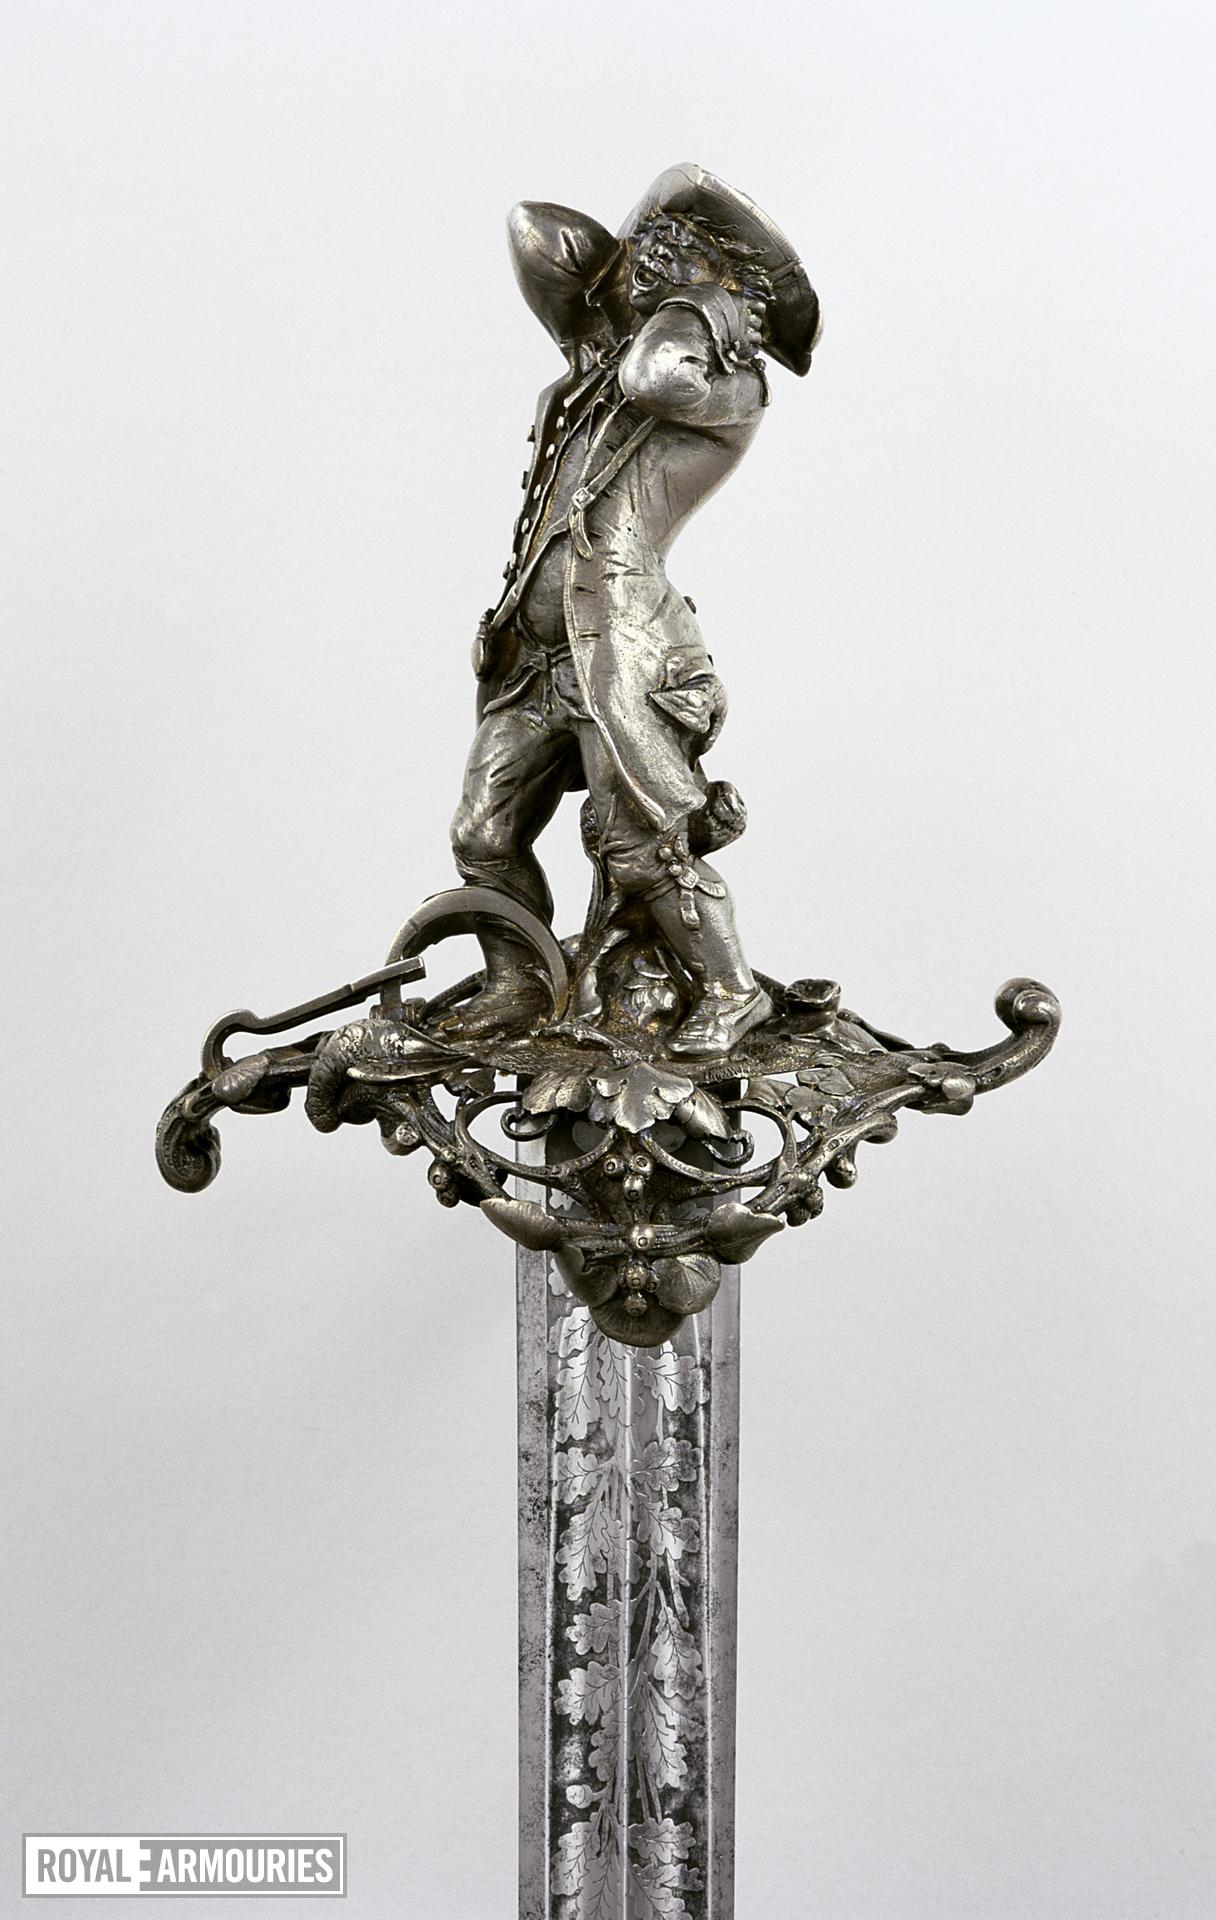 Hanger and scabbard Hunting hanger and scabbard. Hilt by Jules WiÞse, marked Froment-Meurice.